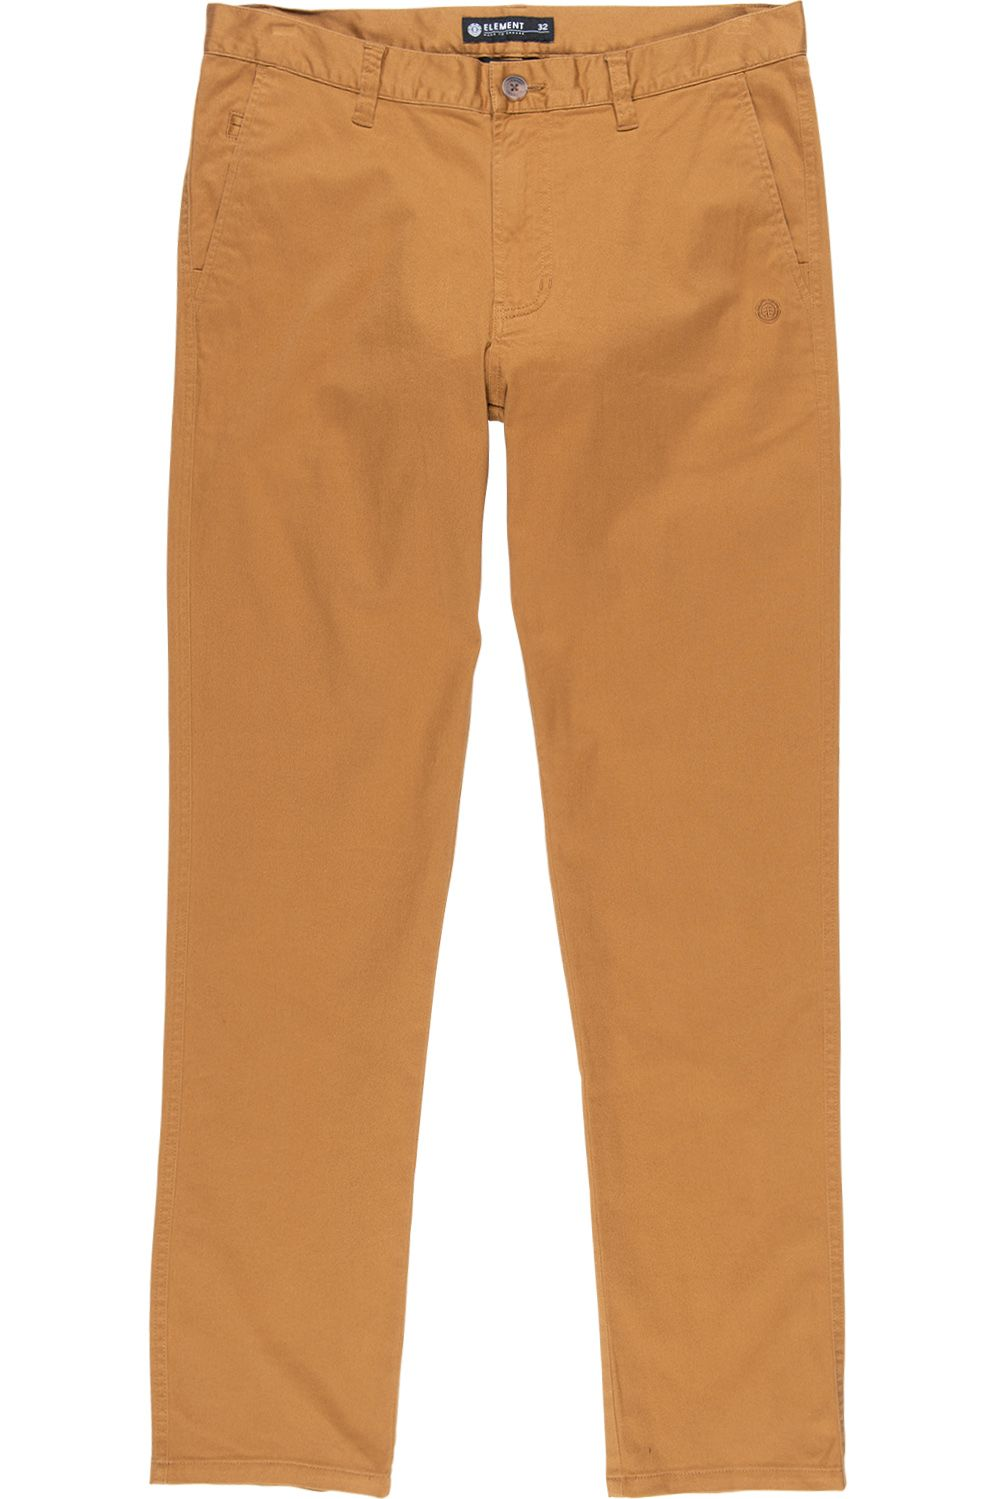 Element Pants HOWLAND CLASSIC CHINO Bronco Brown